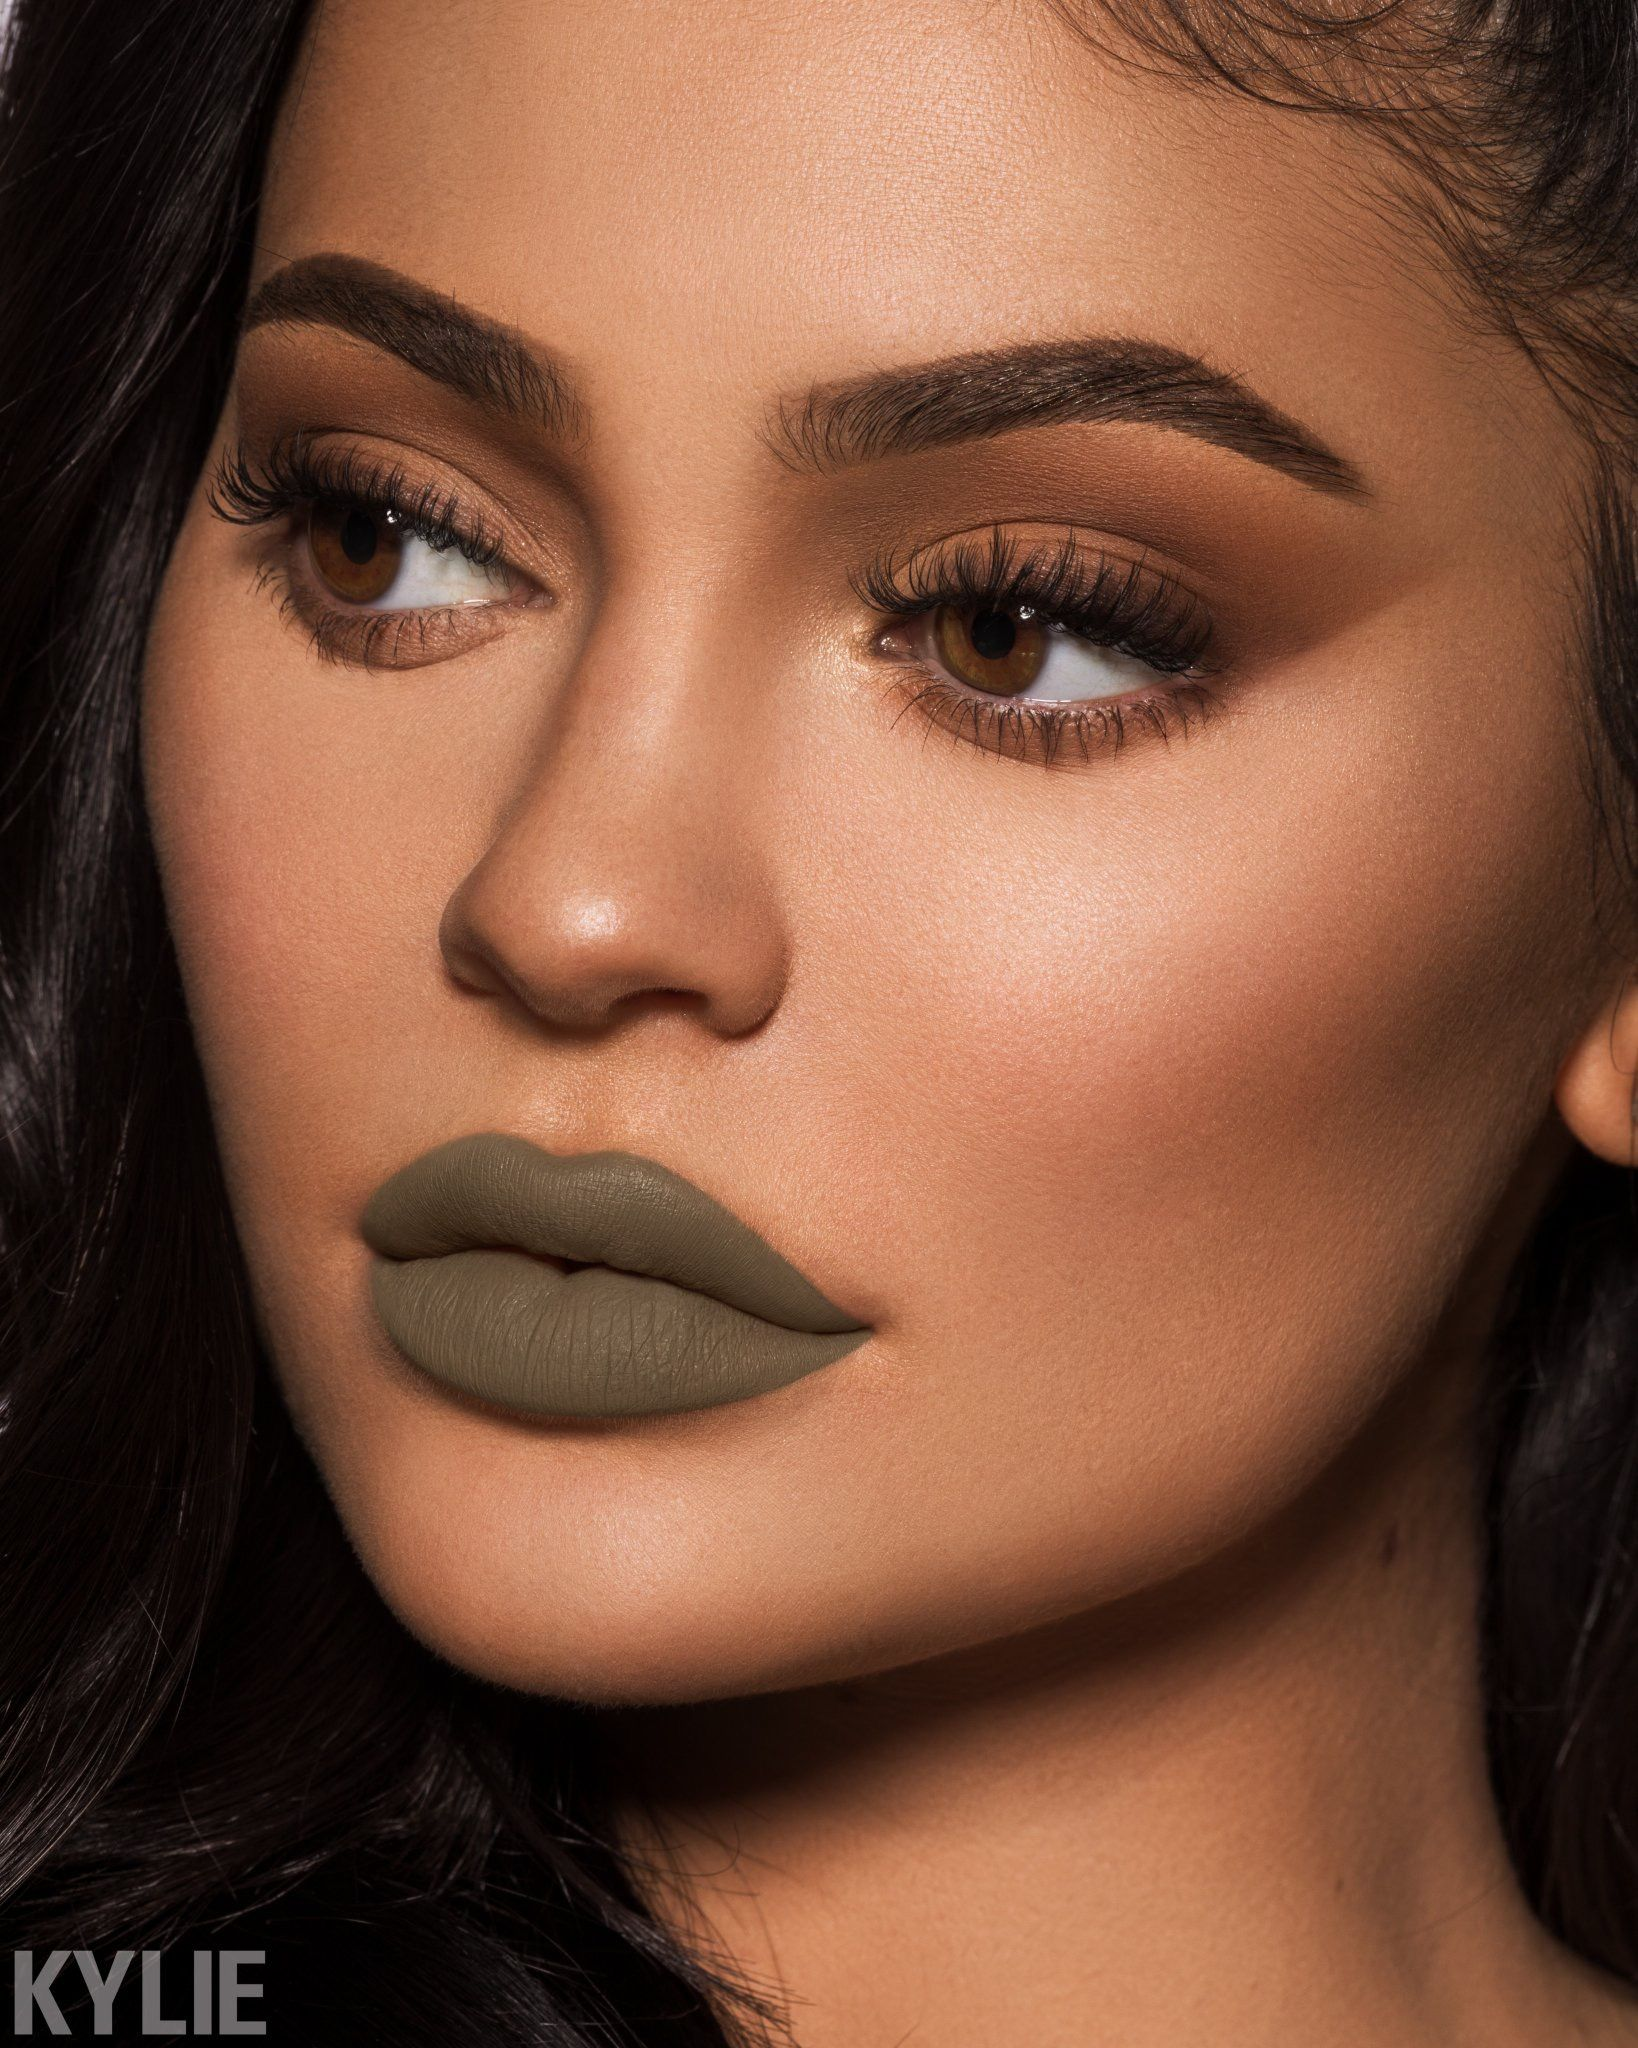 Pin By Tiffany Jade On Kendall And Kylie Jenner Kylie Jenner